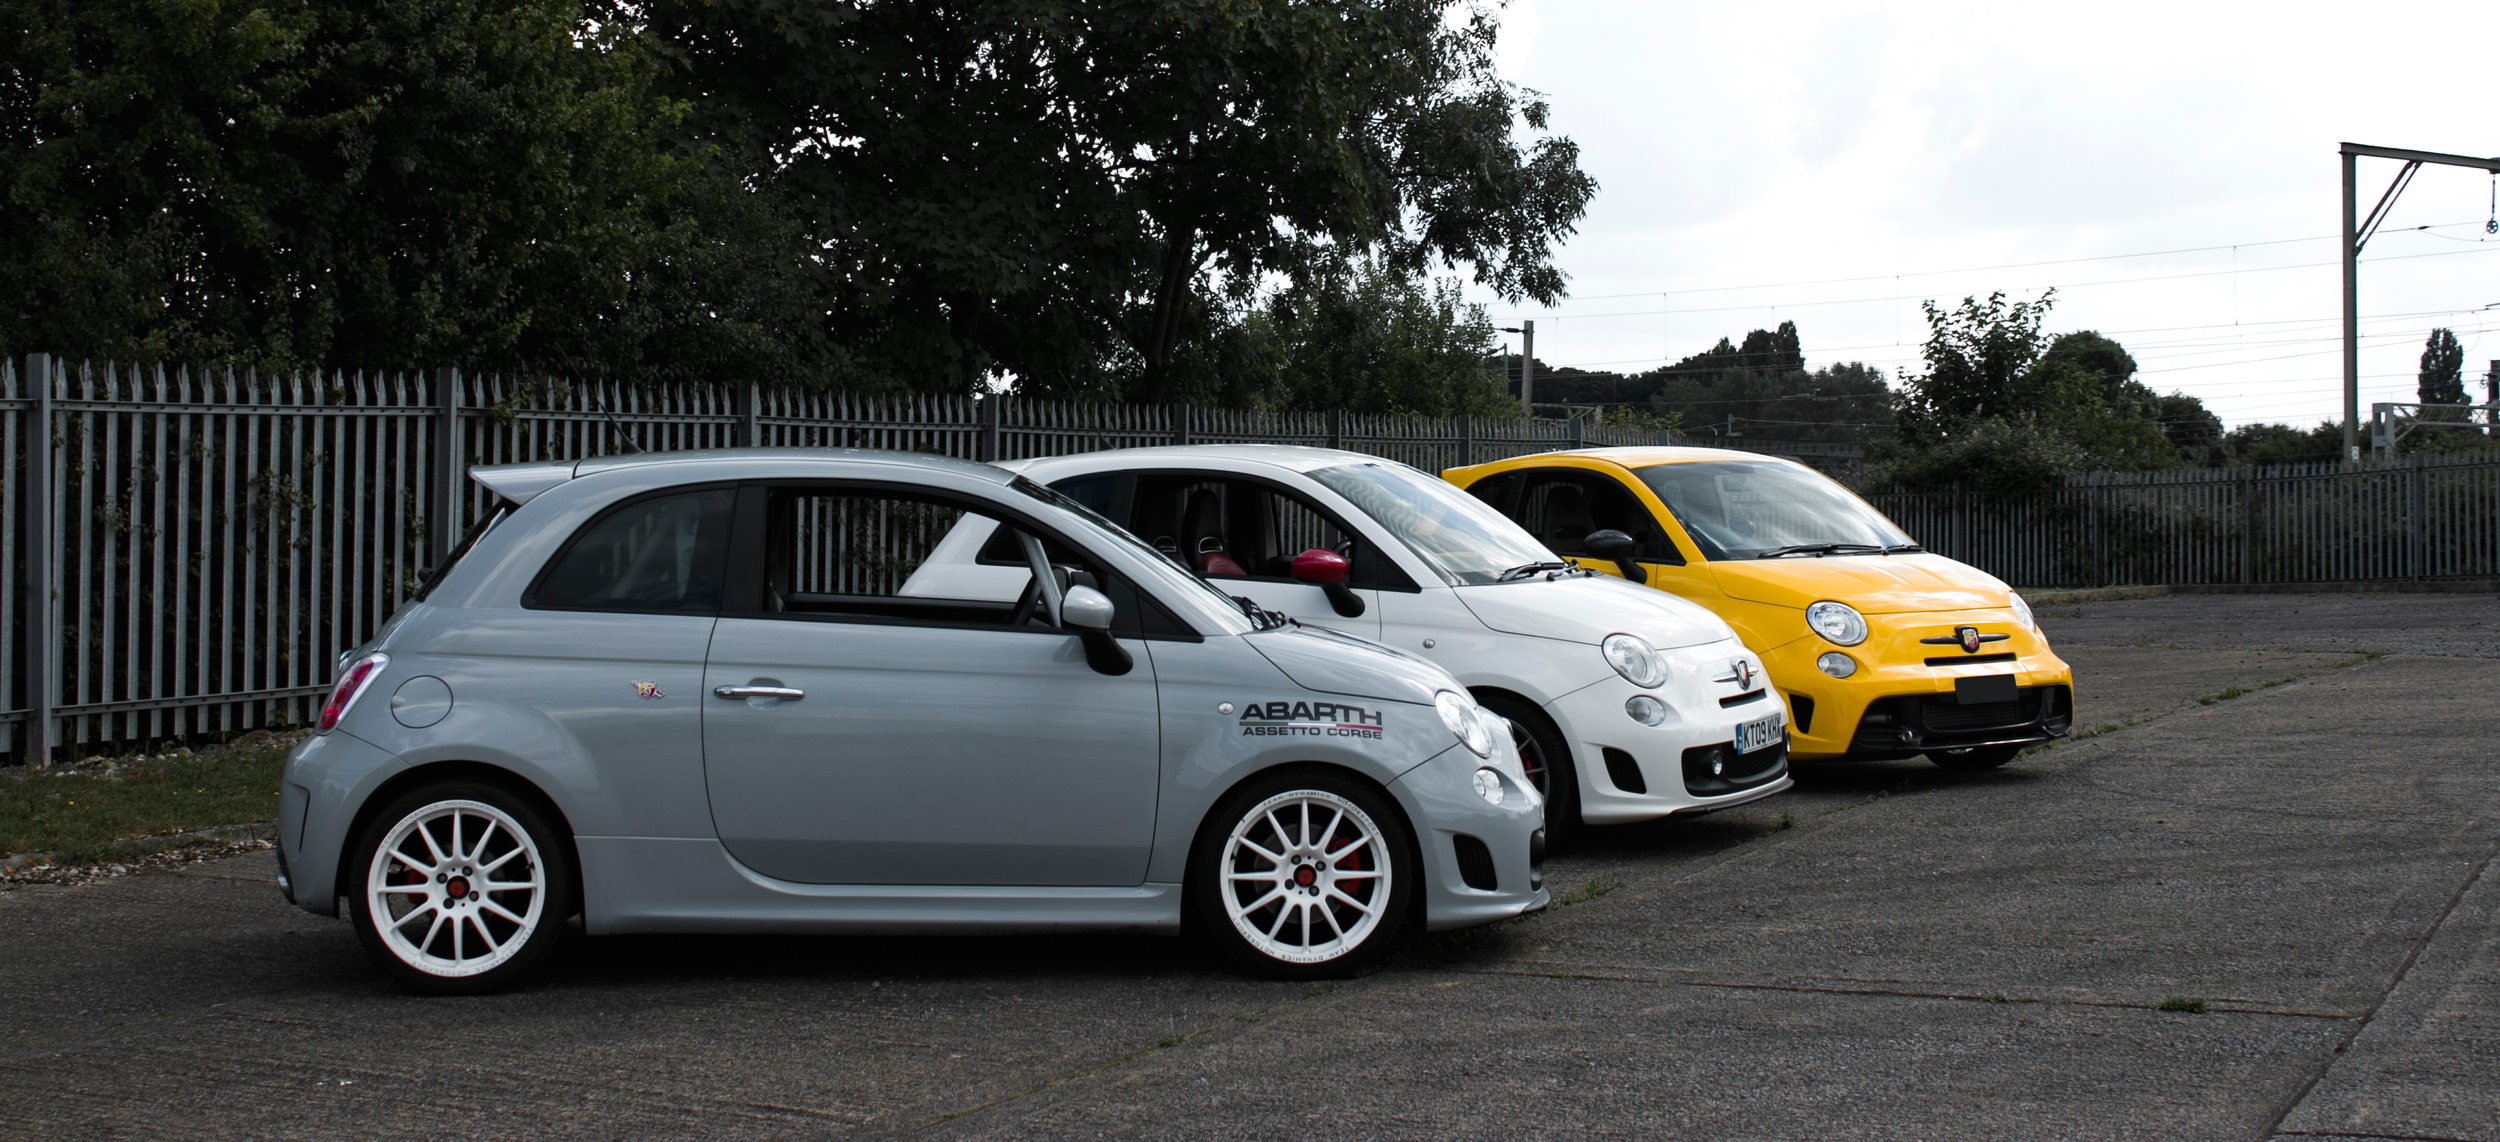 Our development cars